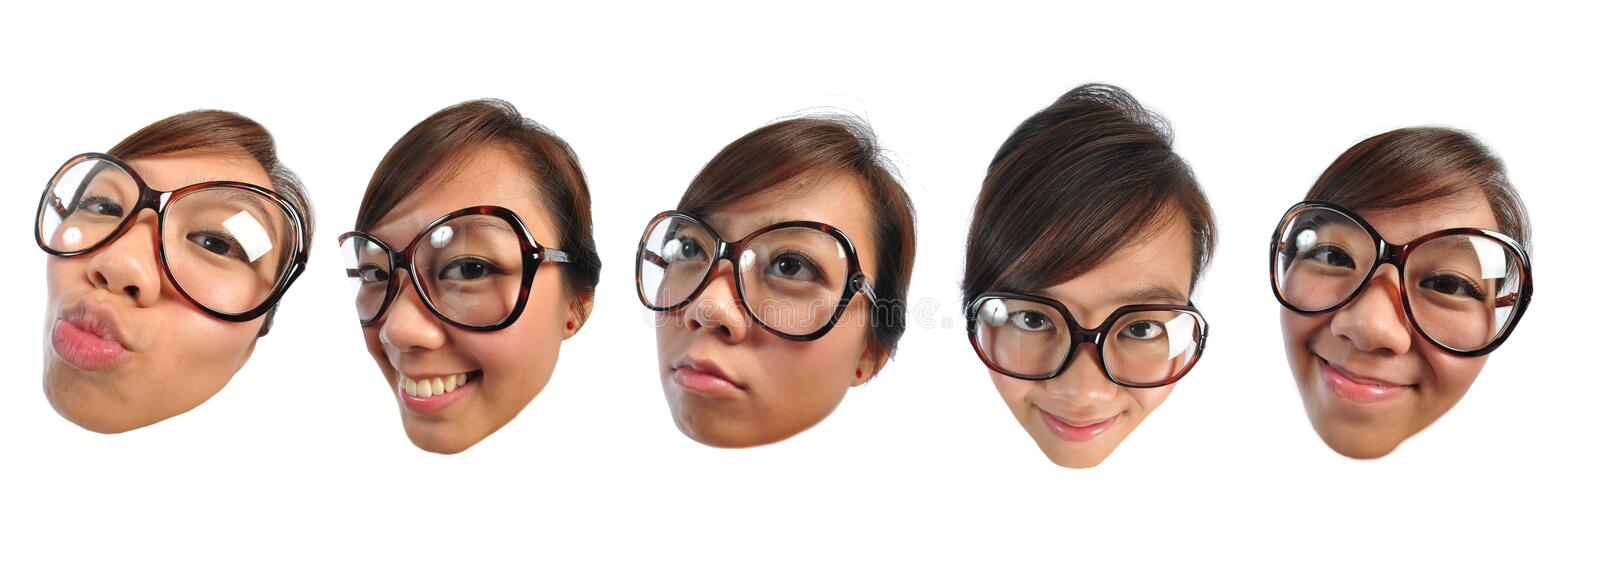 Asian chinese girl making funny doll faces. Beautiful young Asian Woman picture taken from the top to give a big doll head effect royalty free stock images